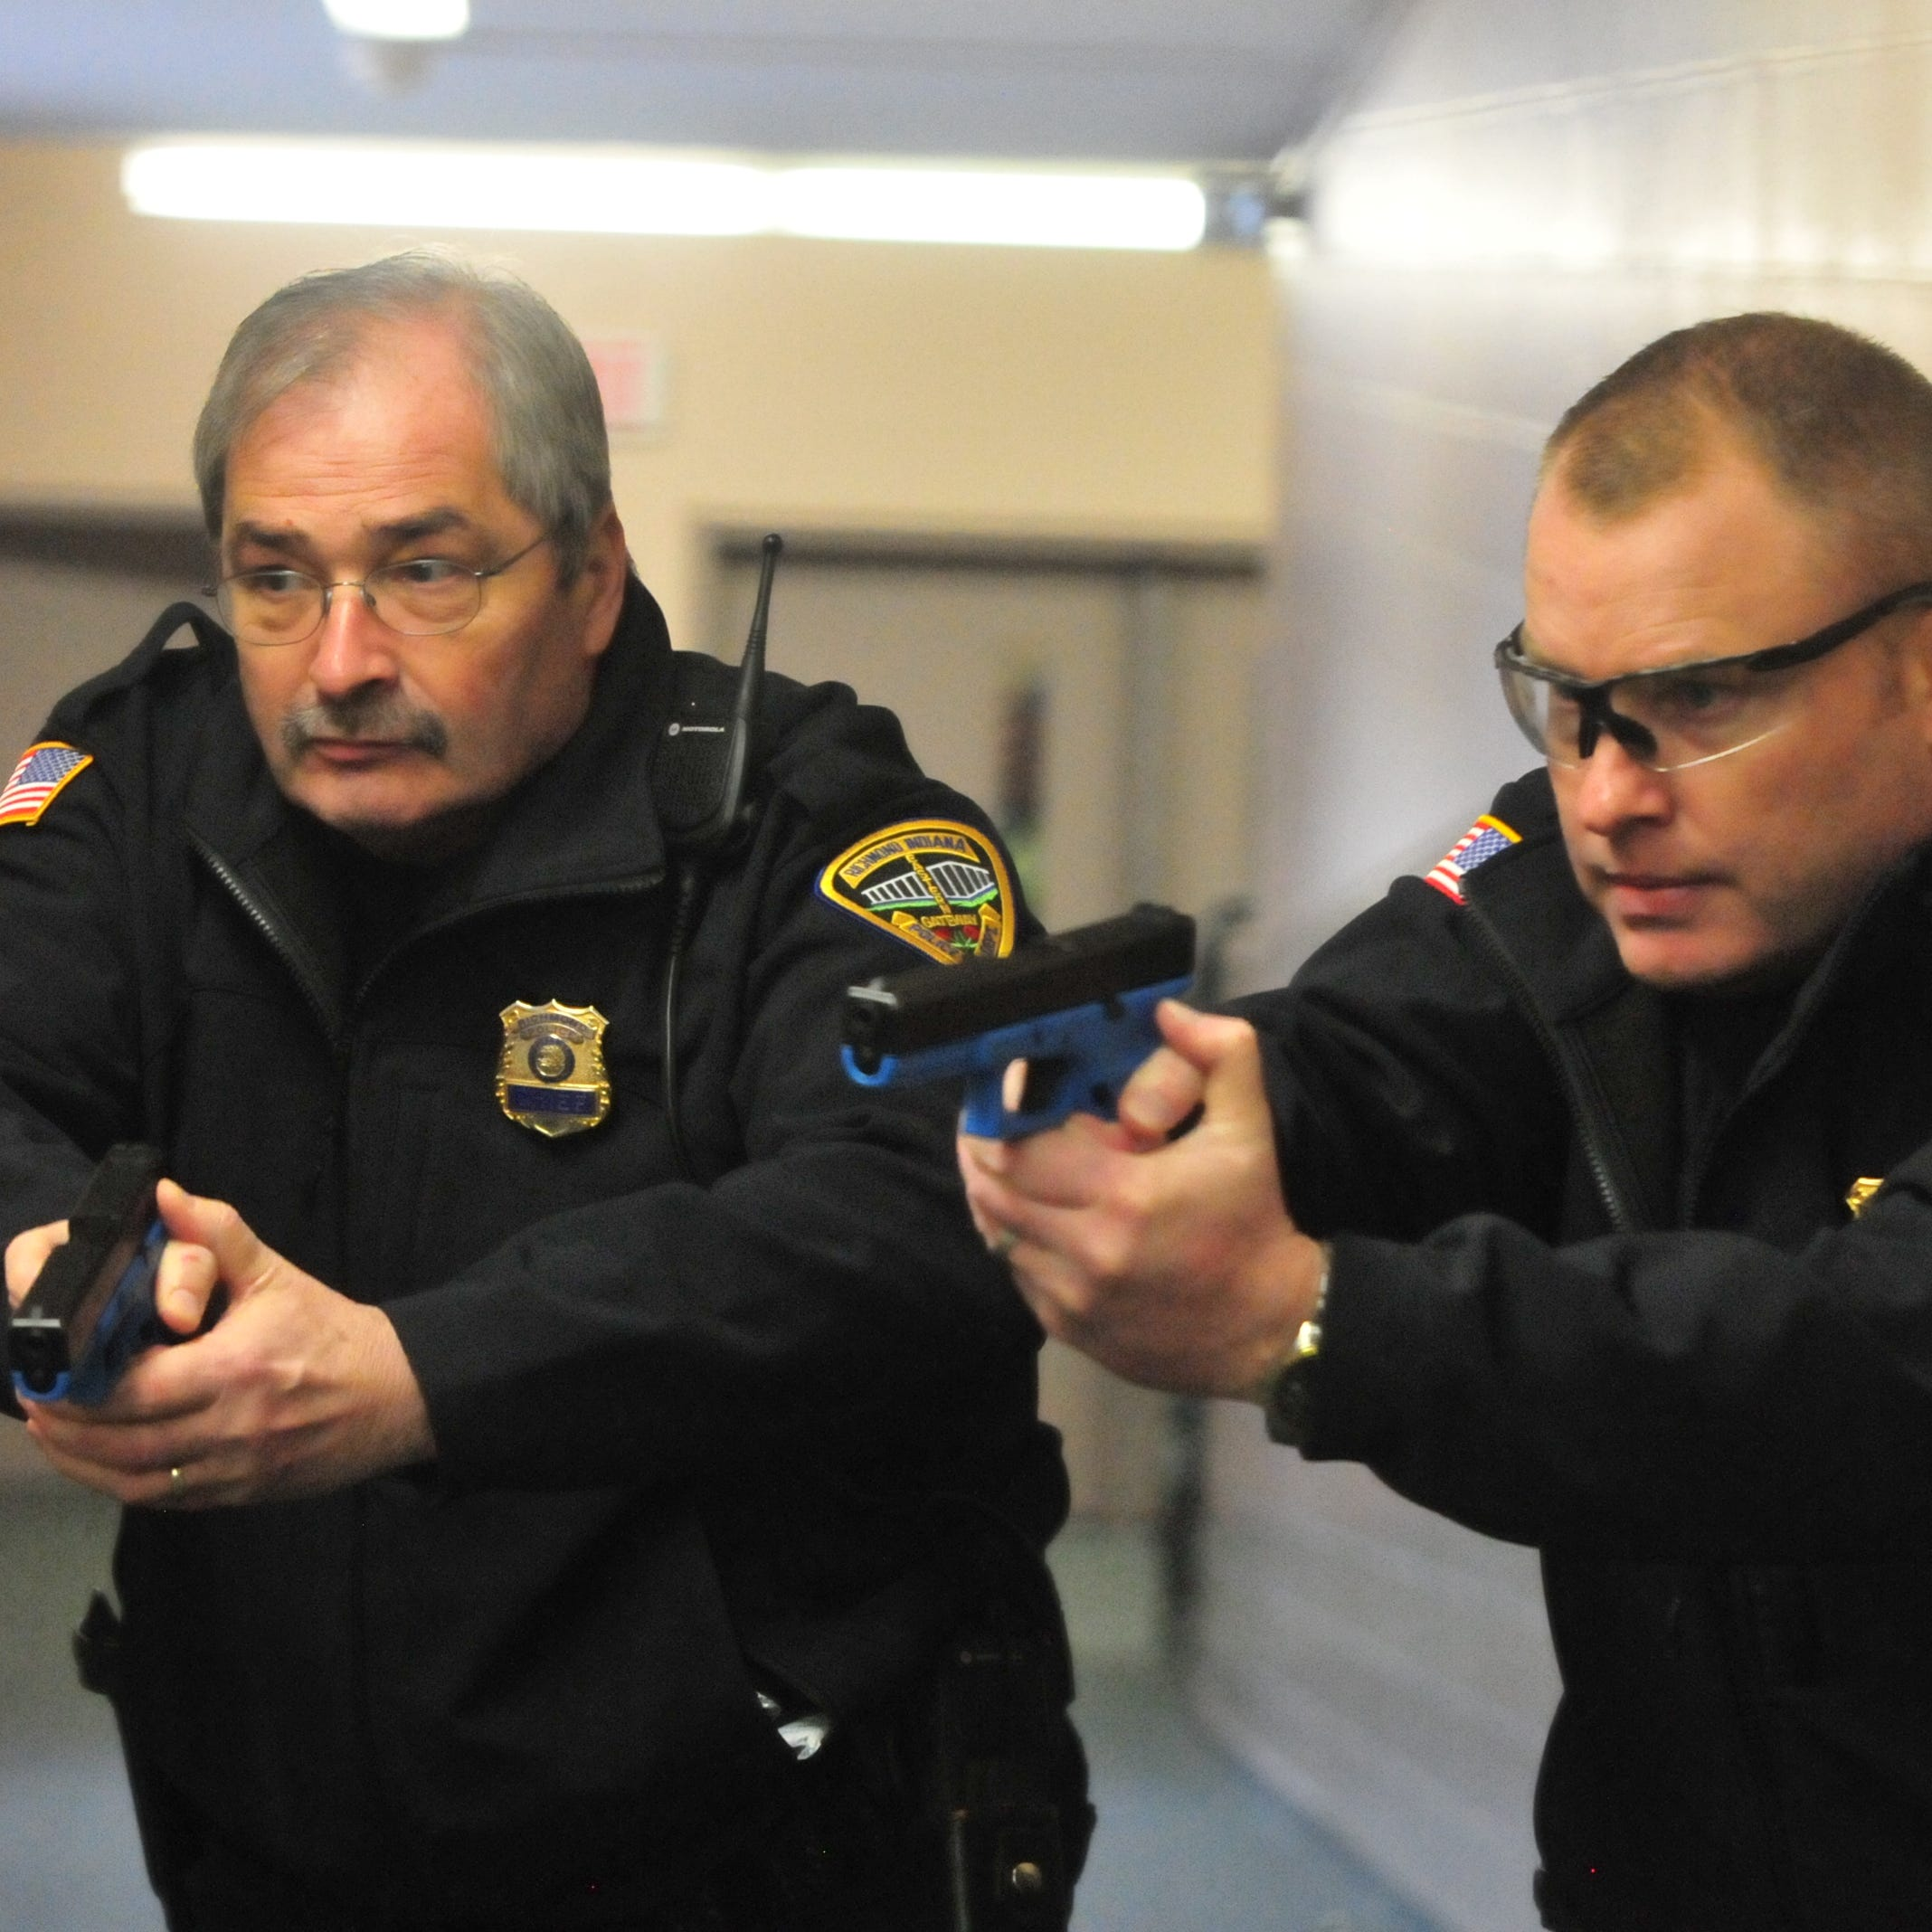 Officers, school observers learn from active-shooter training scenarios